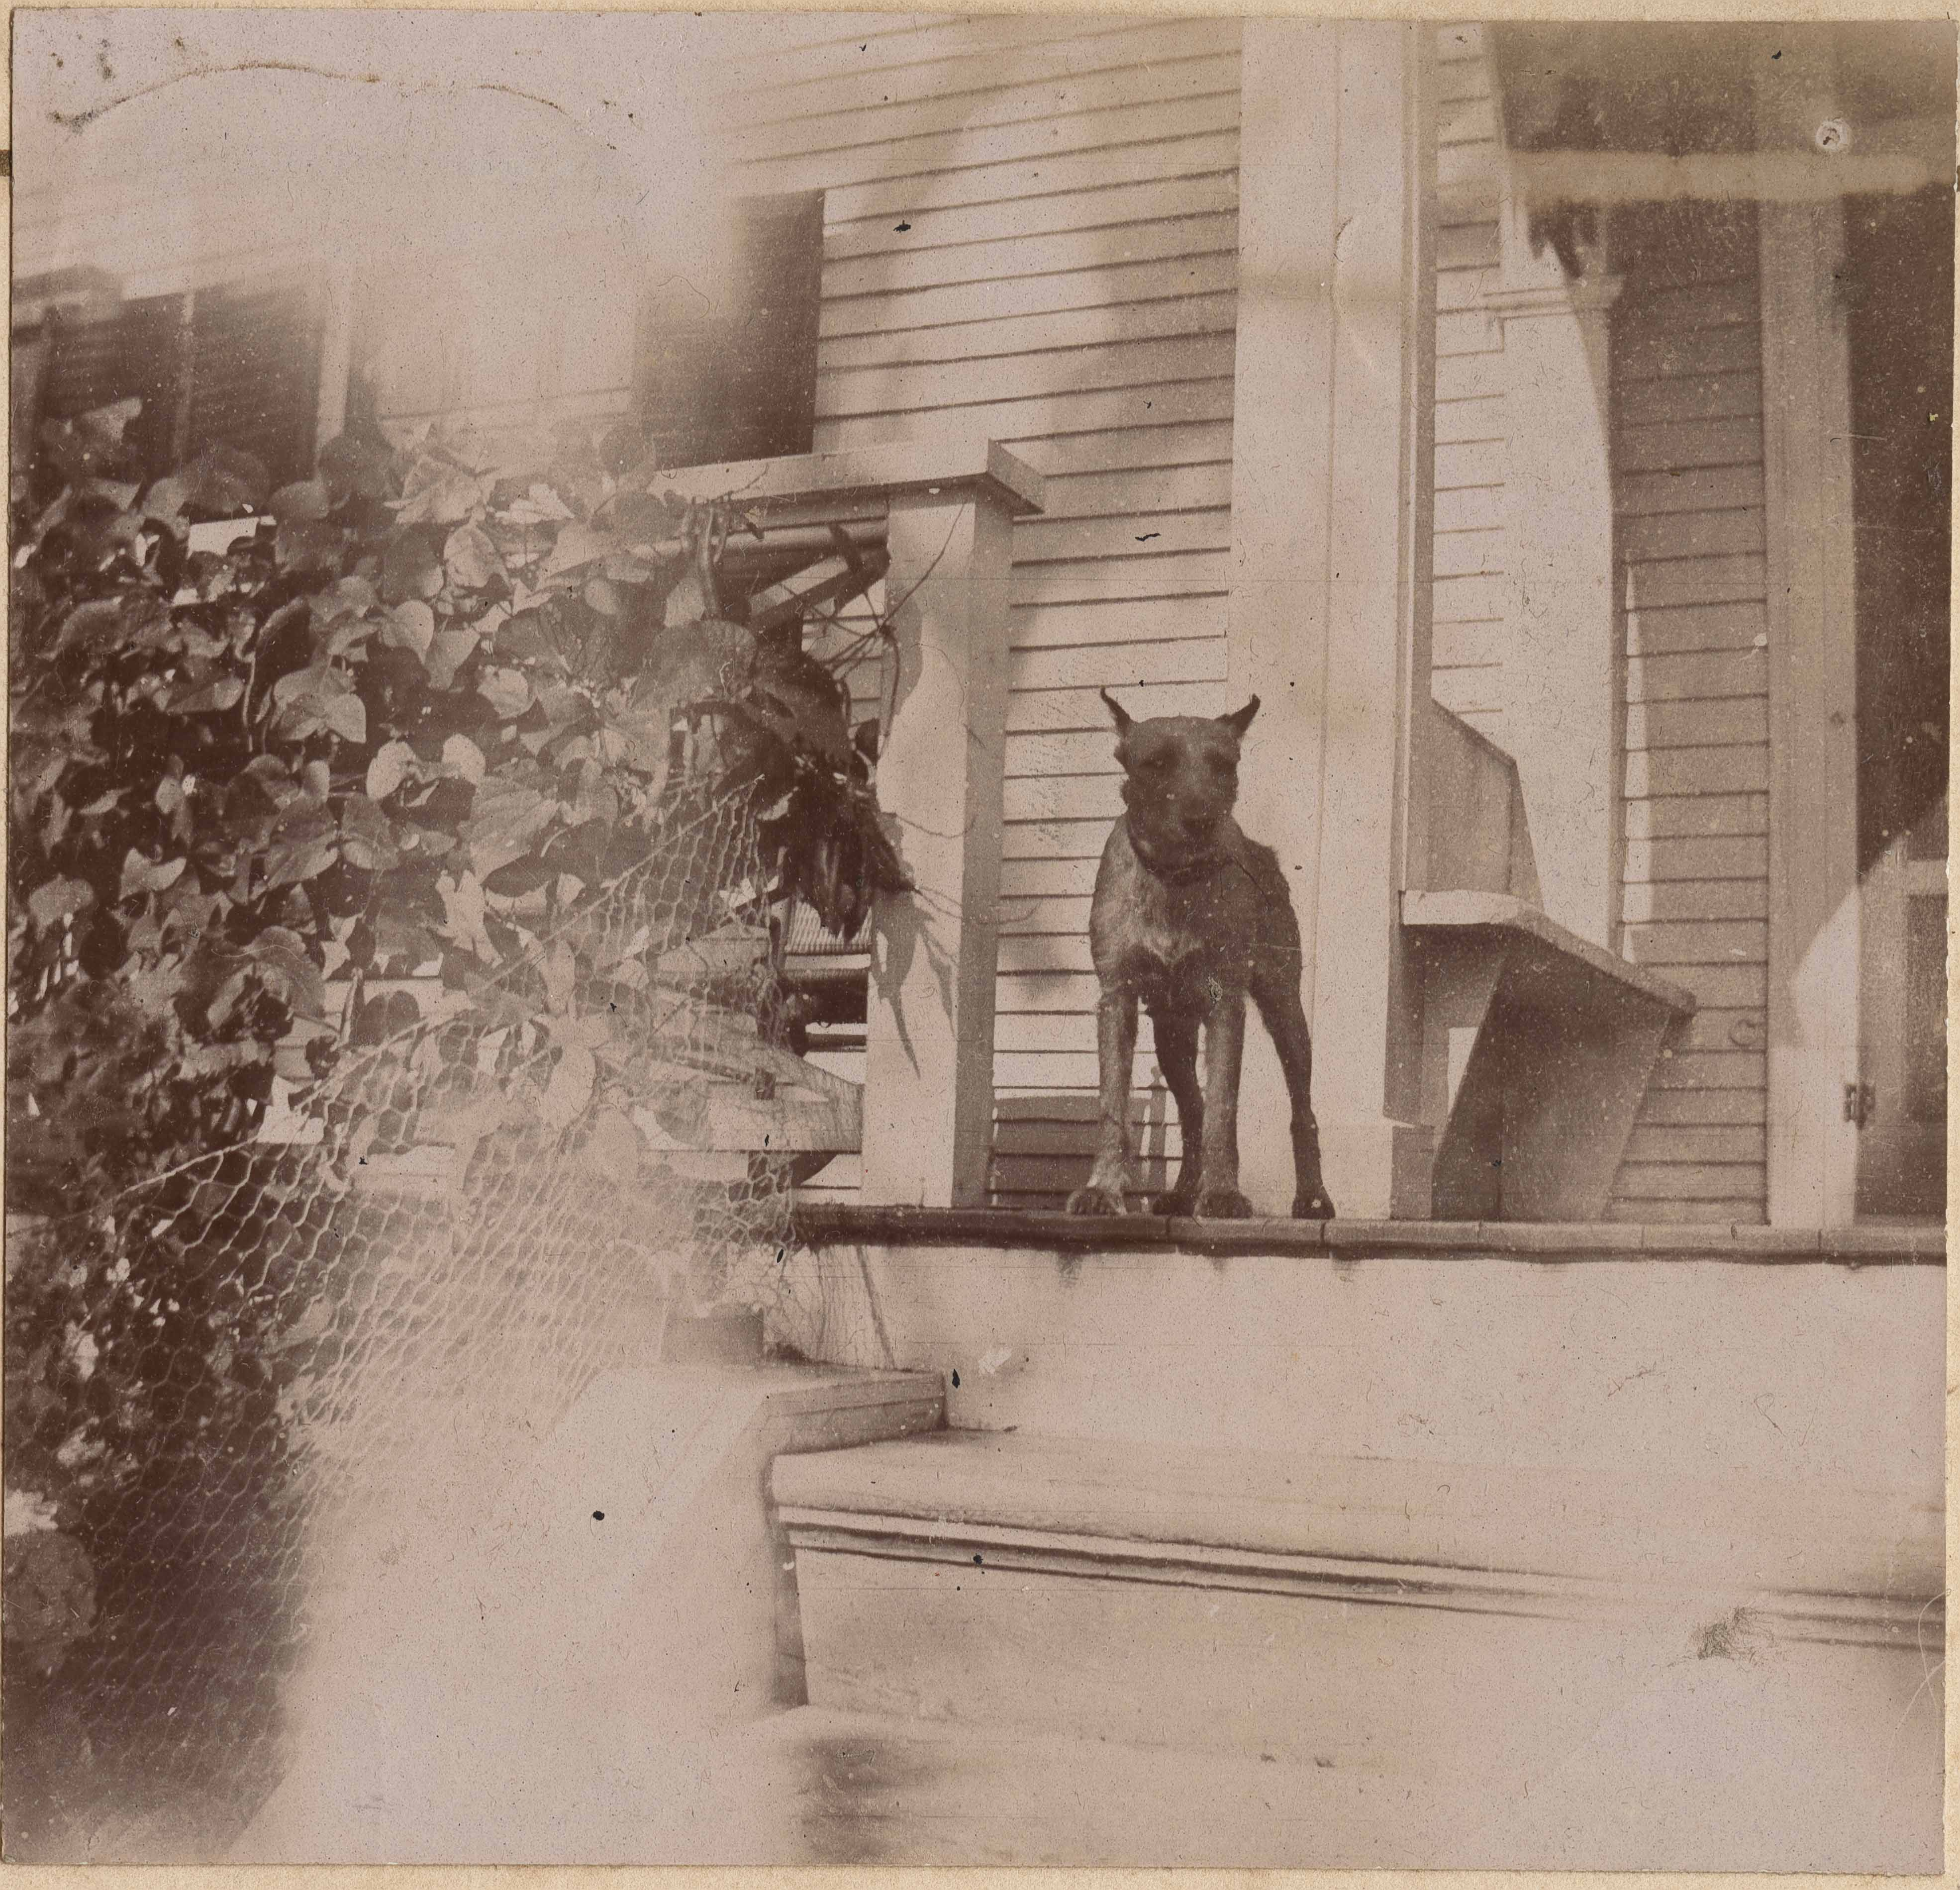 Dog standing on porch near bench